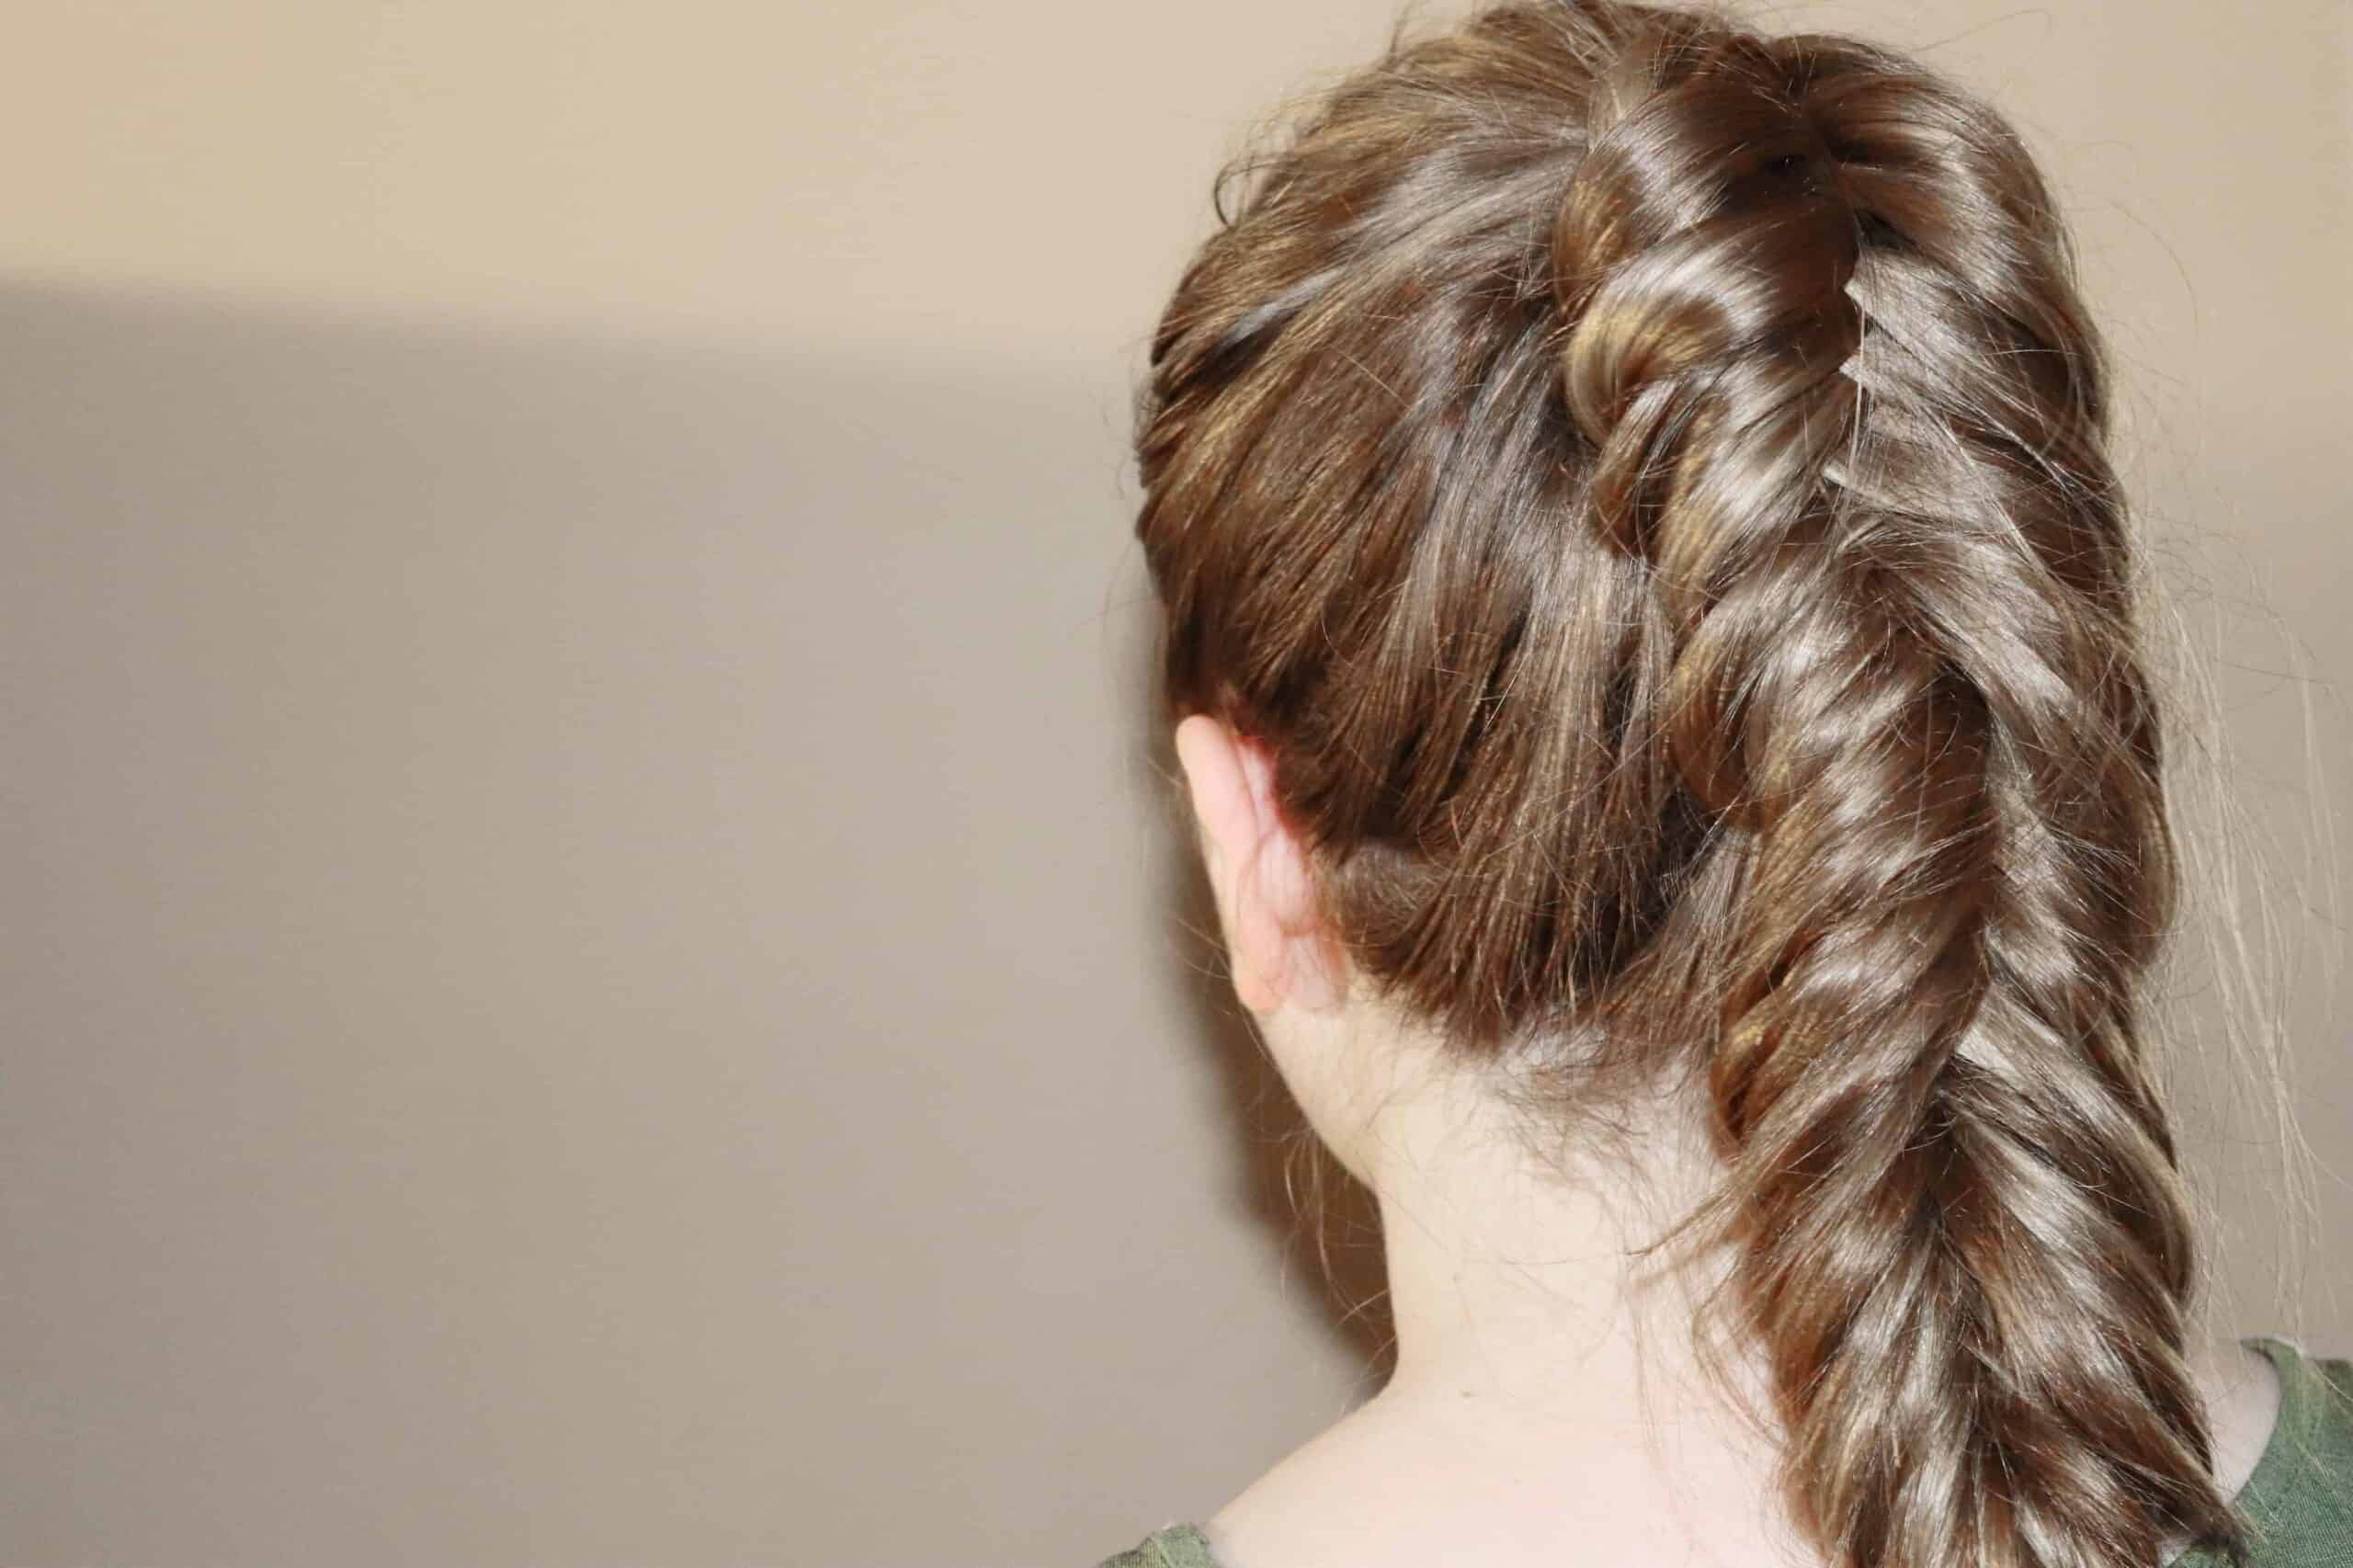 a woman with a fishtail braid on her ponytail